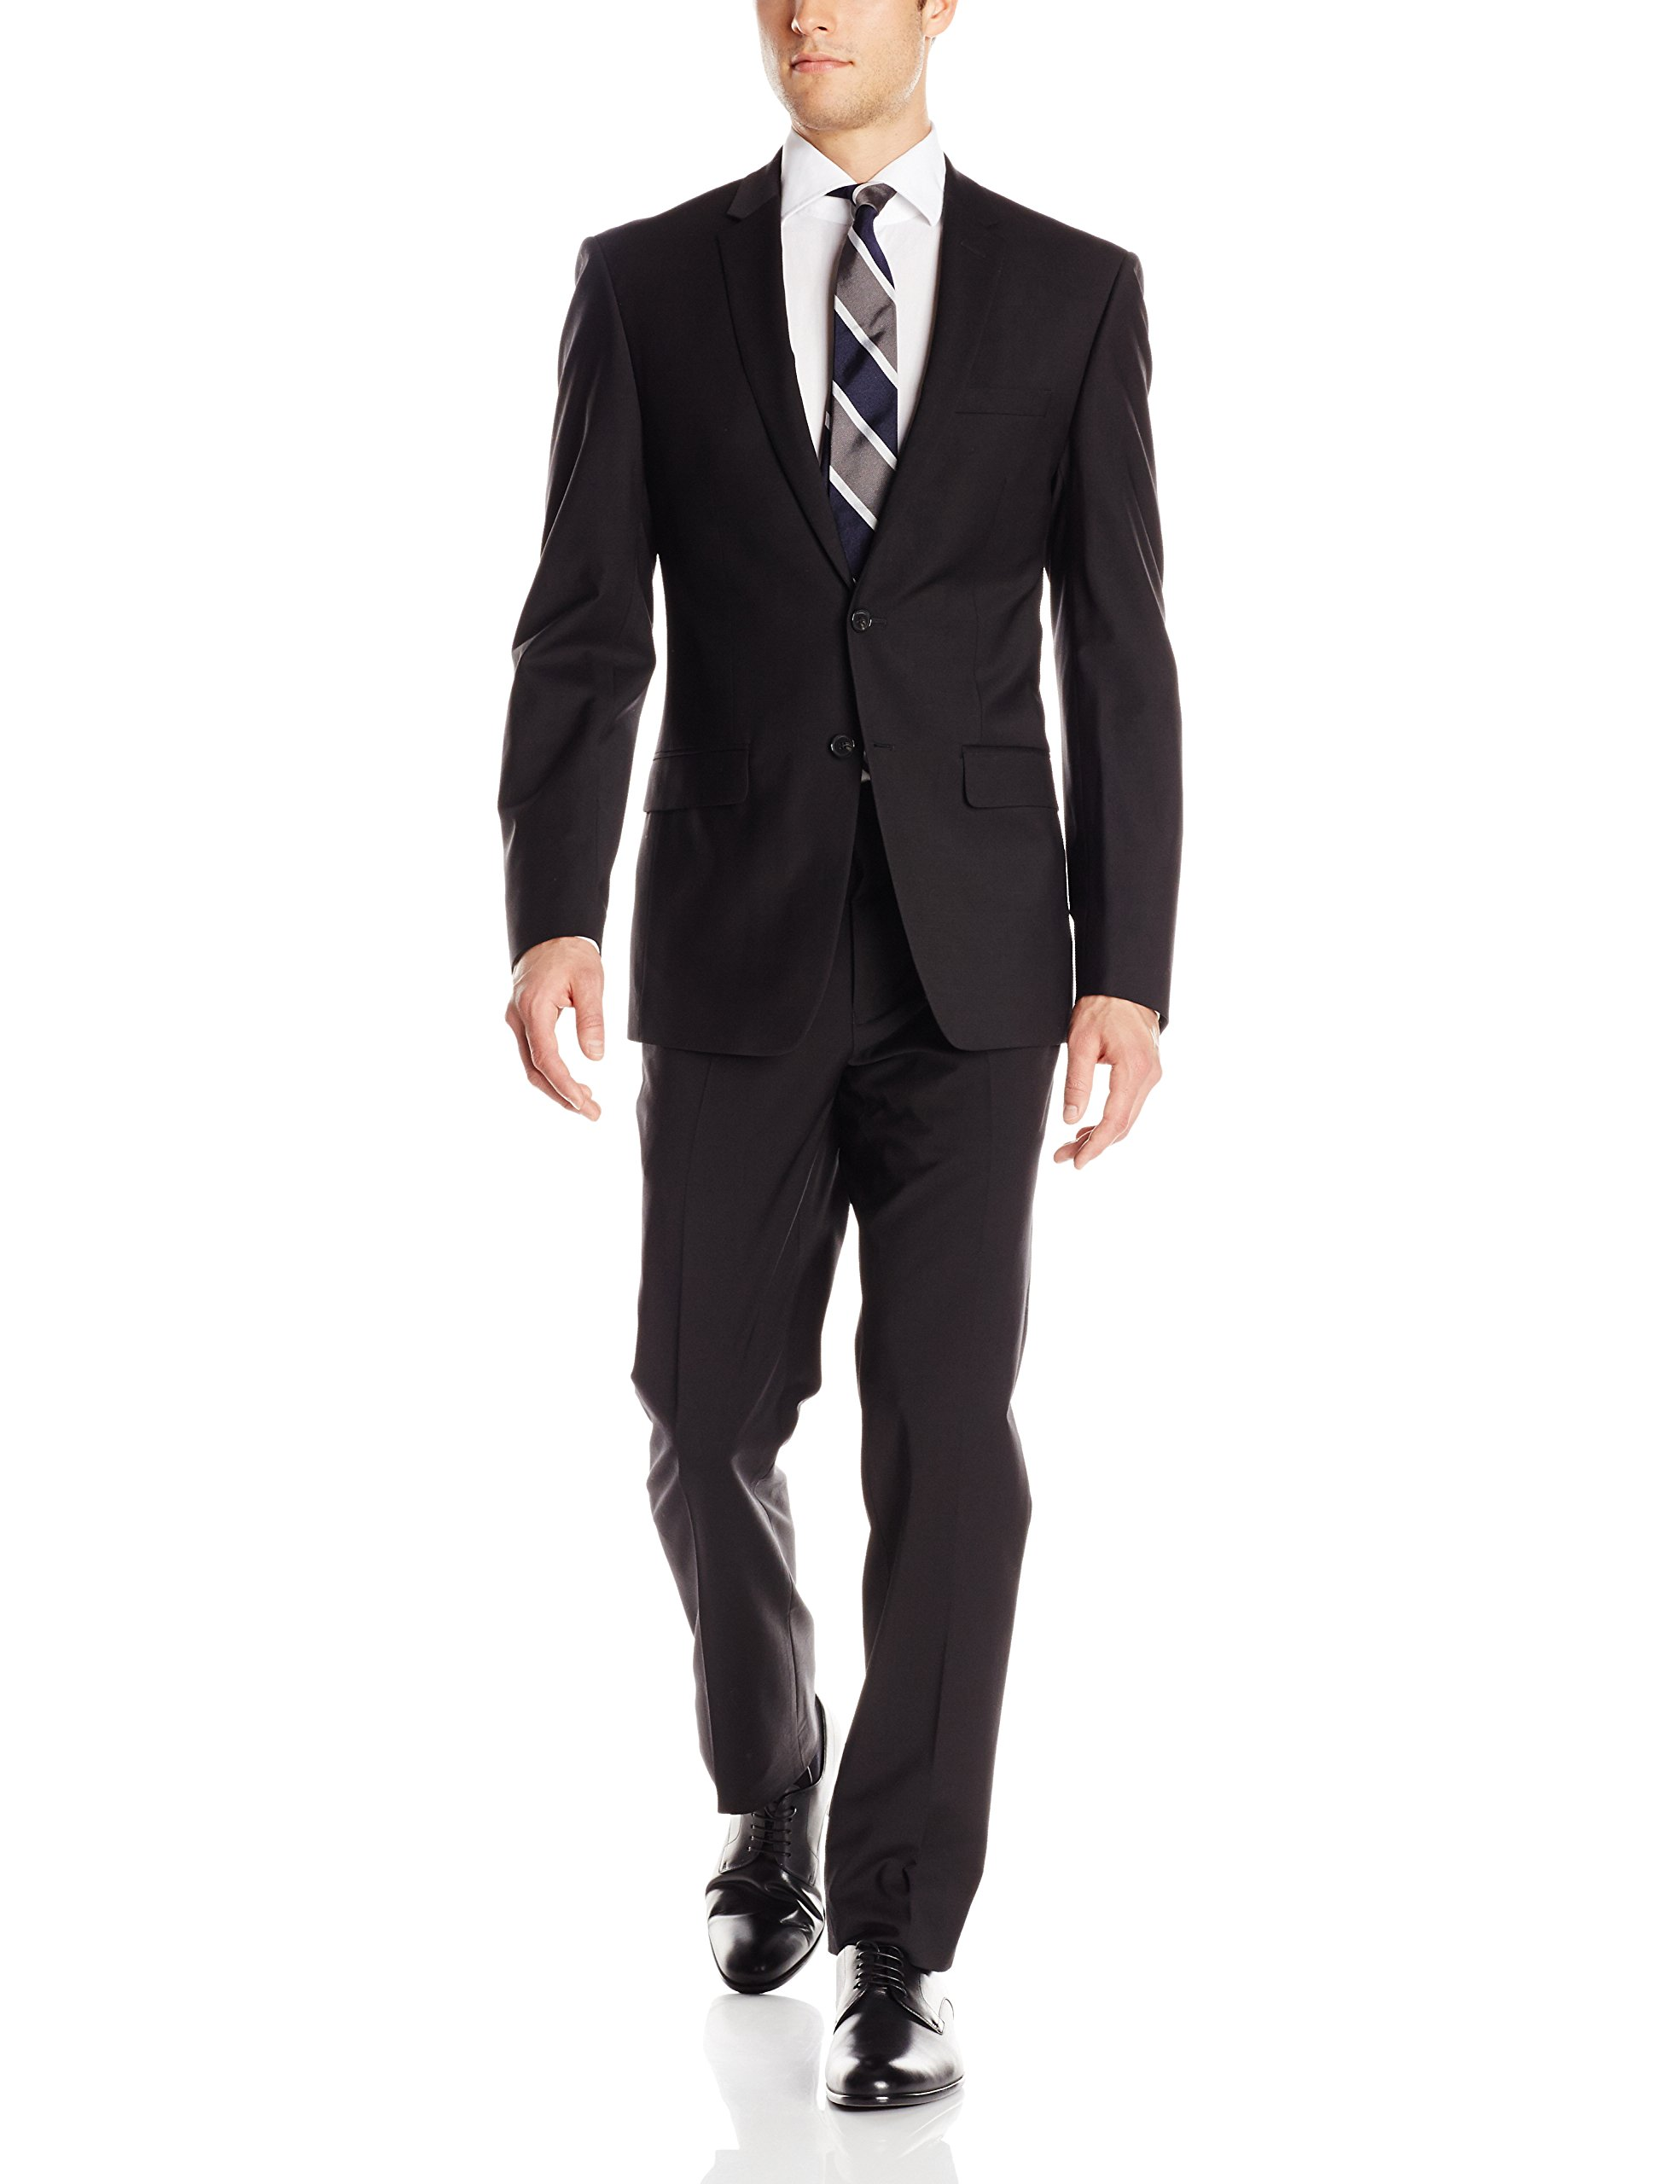 DKNY Men's Driver 2 Button Side Vent Modern Fit Suit 2 Piece, Black, 40/Regular by DKNY